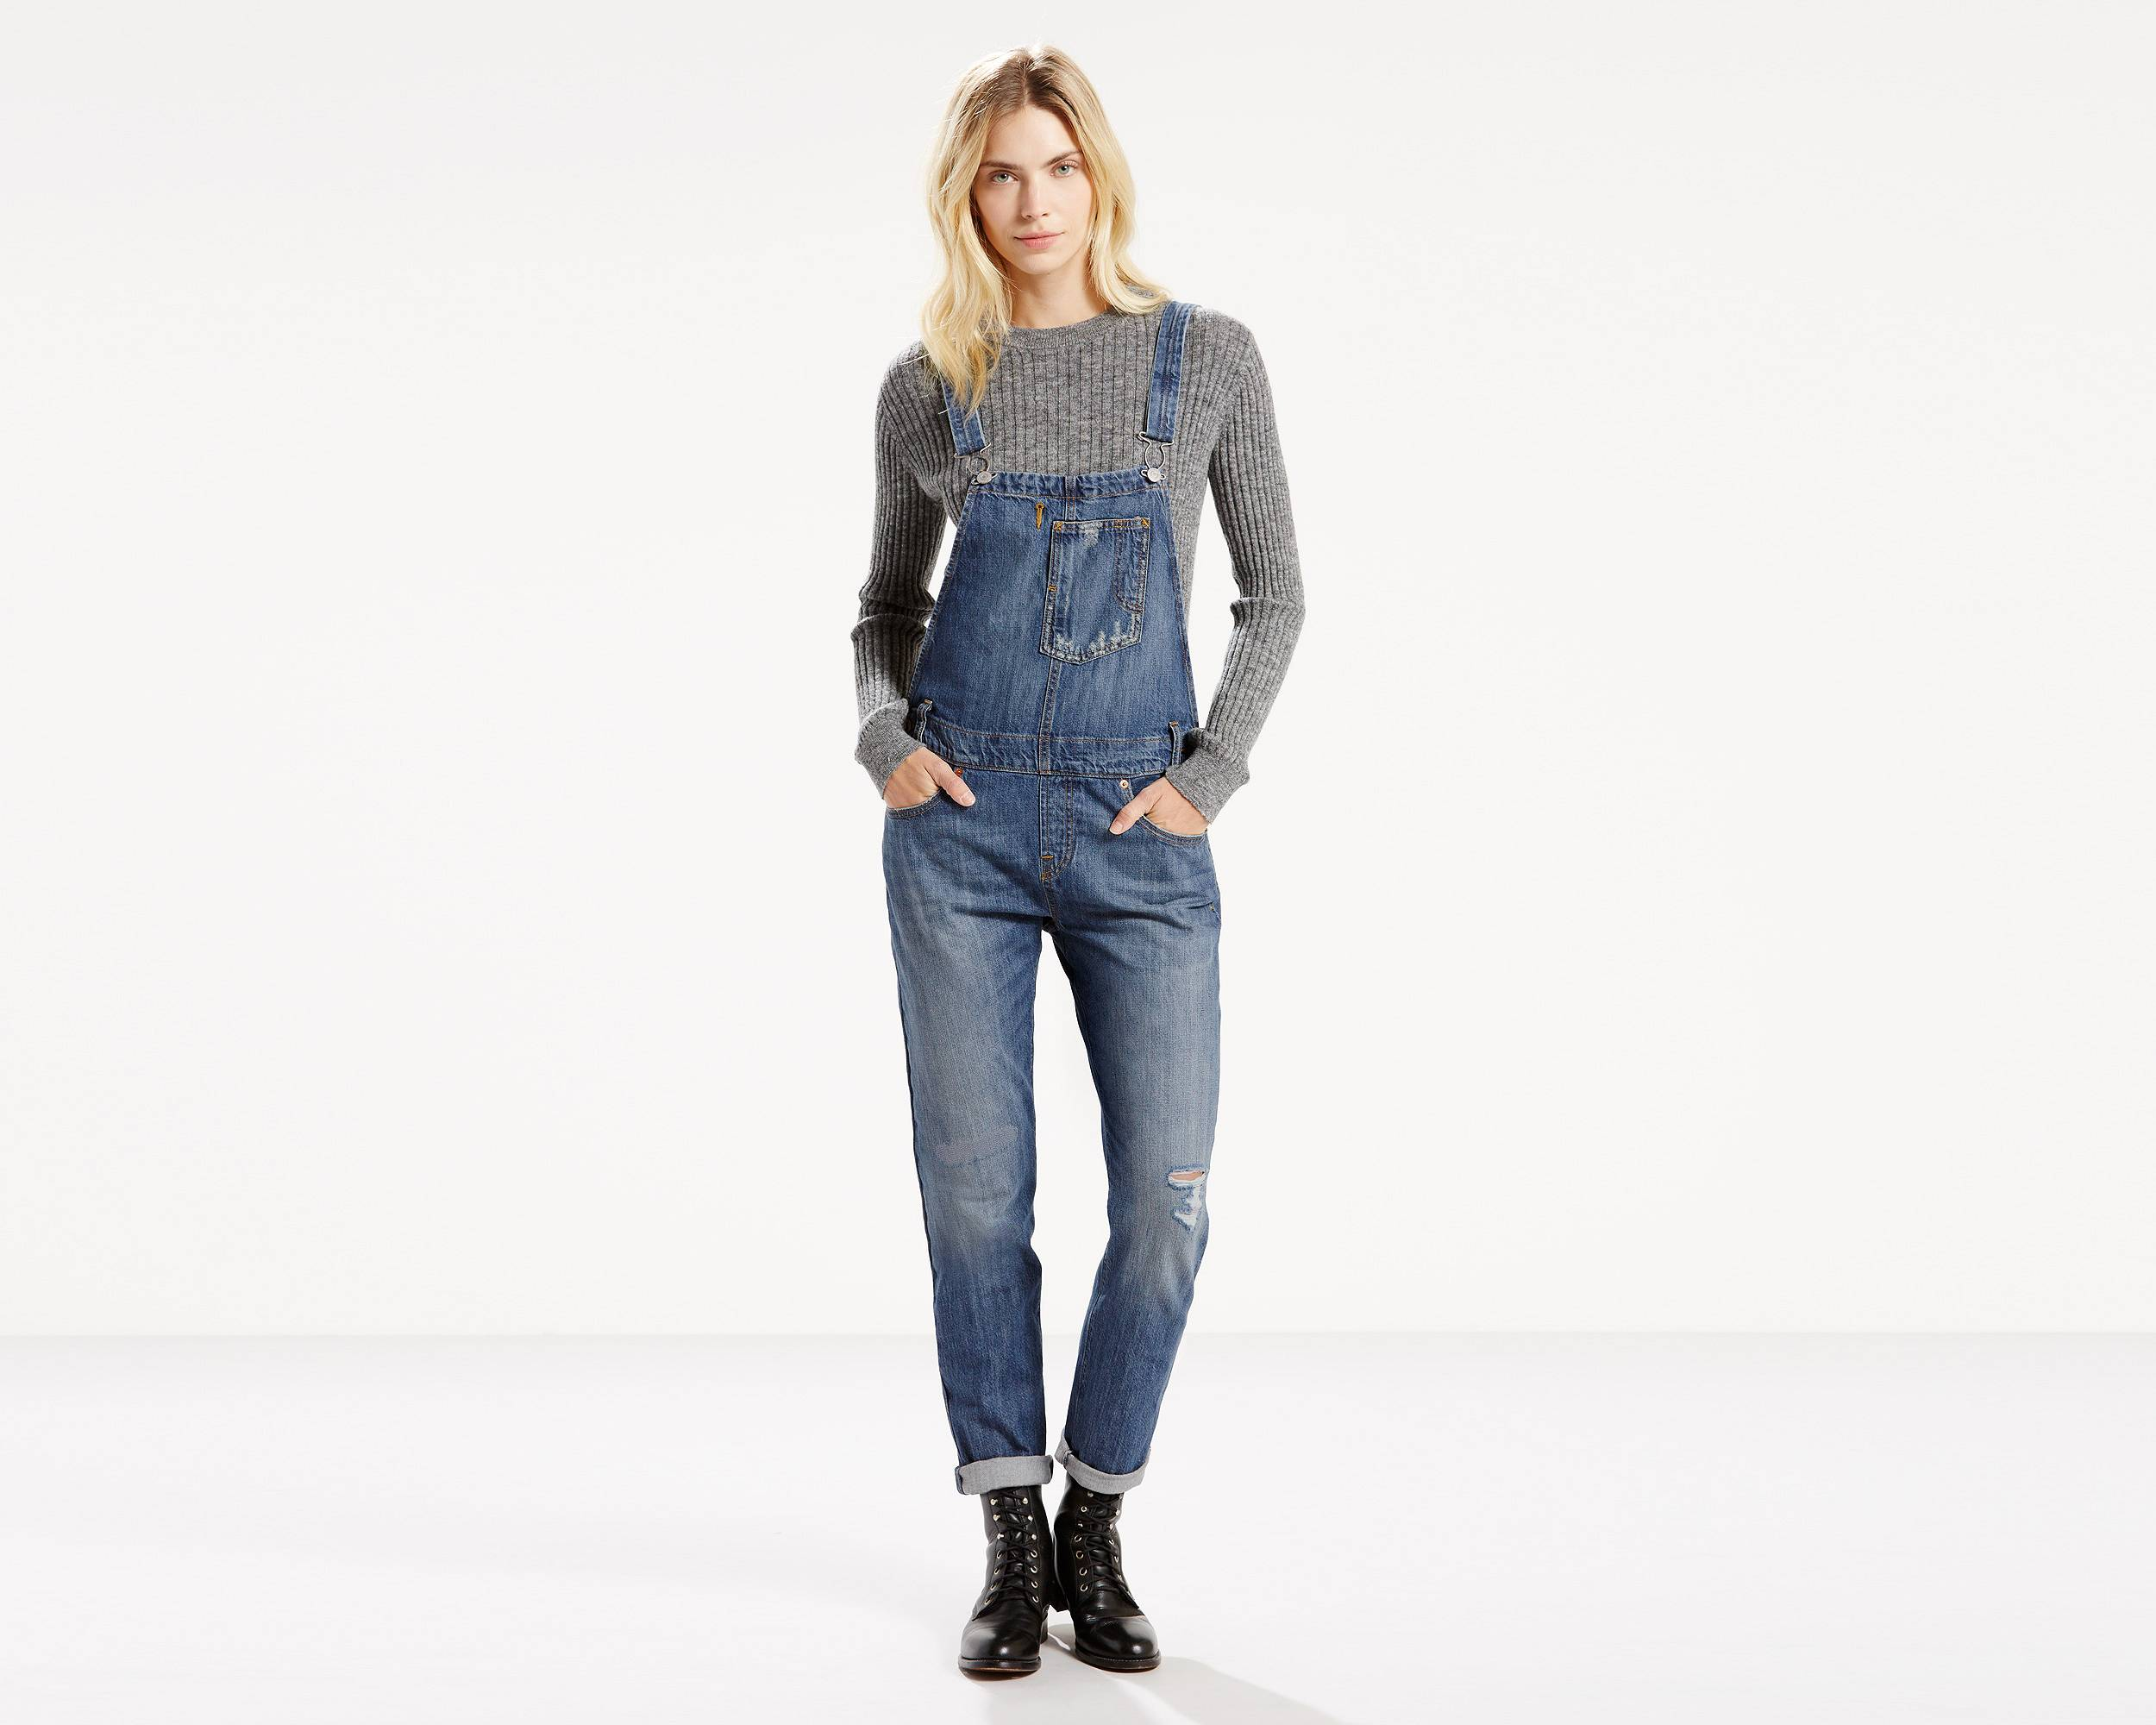 Overalls For Women - Shop Women's Denim Overalls | Levi's®